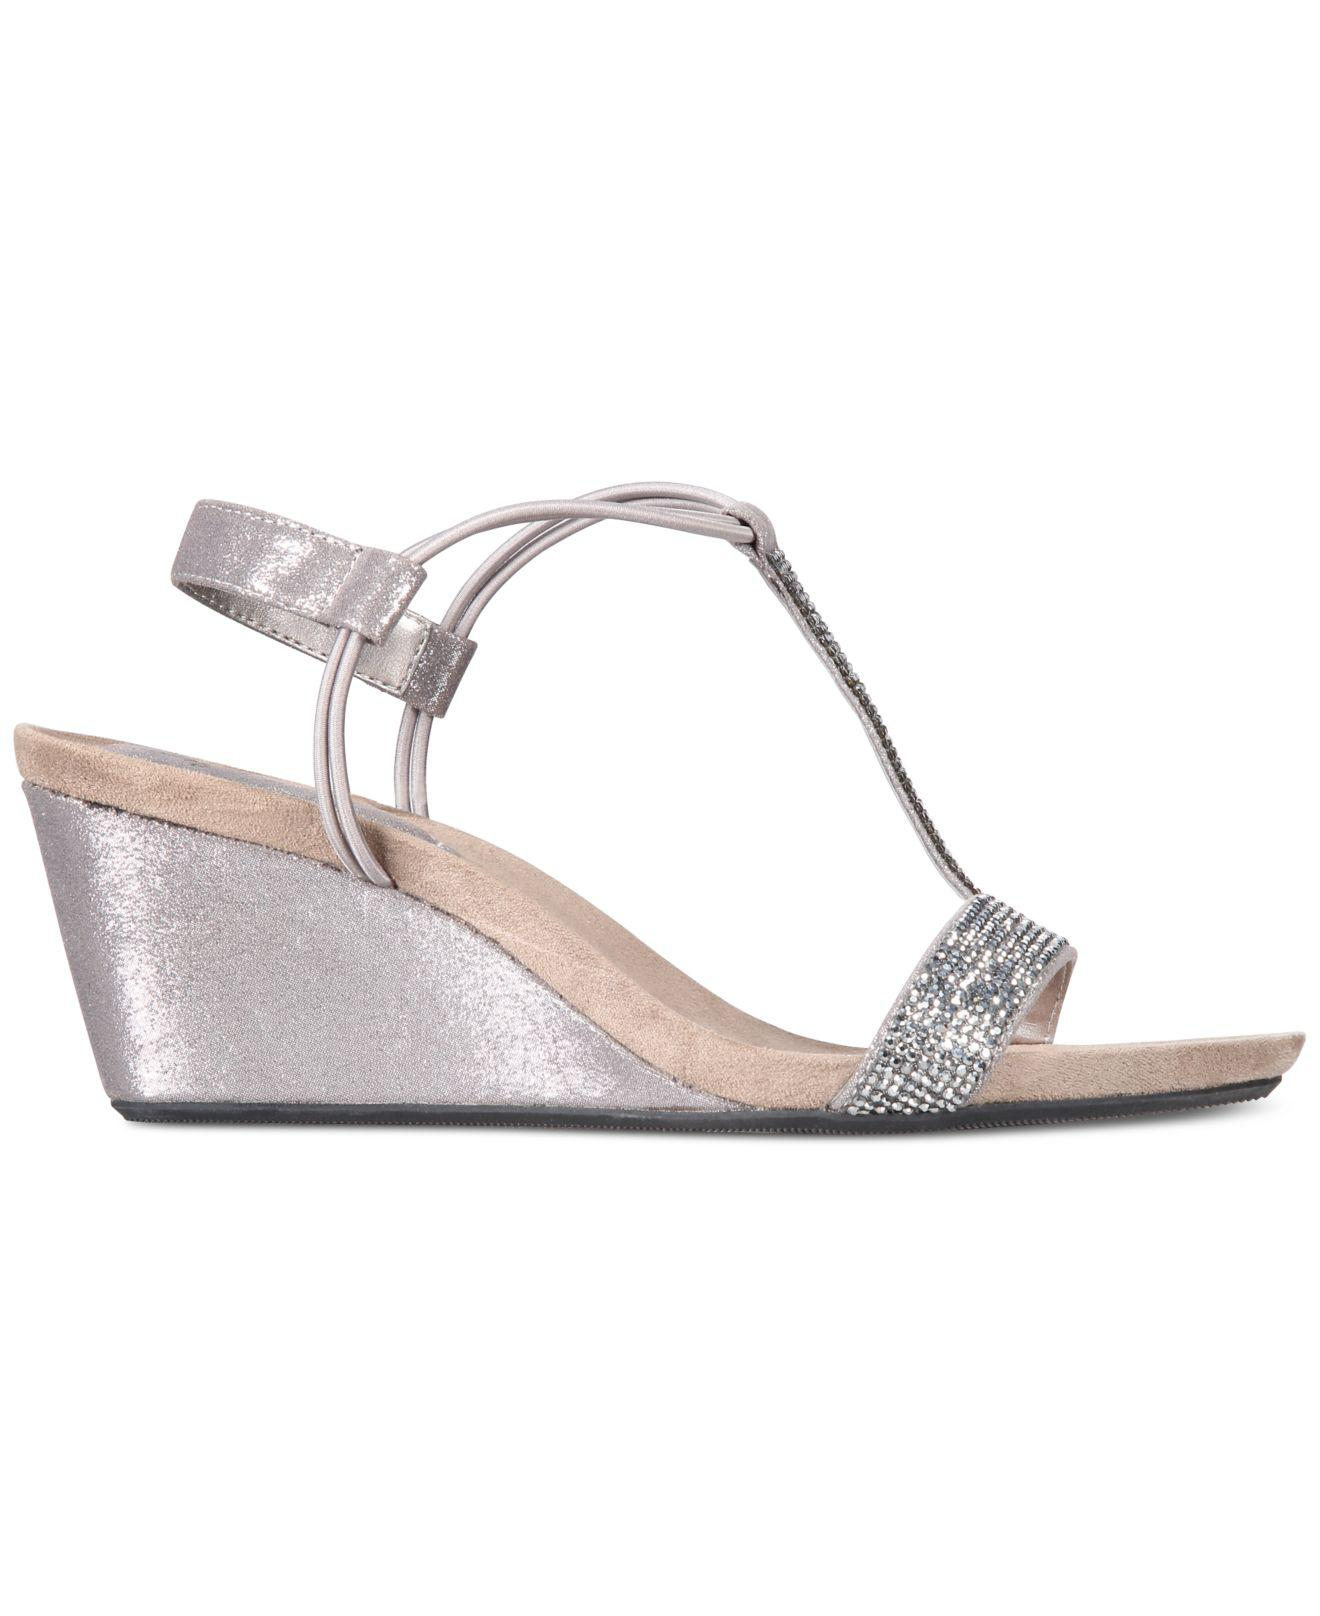 1ecf0d3b23 Style & Co. Mulan 2 Platform Wedge Sandals in Gray - Lyst